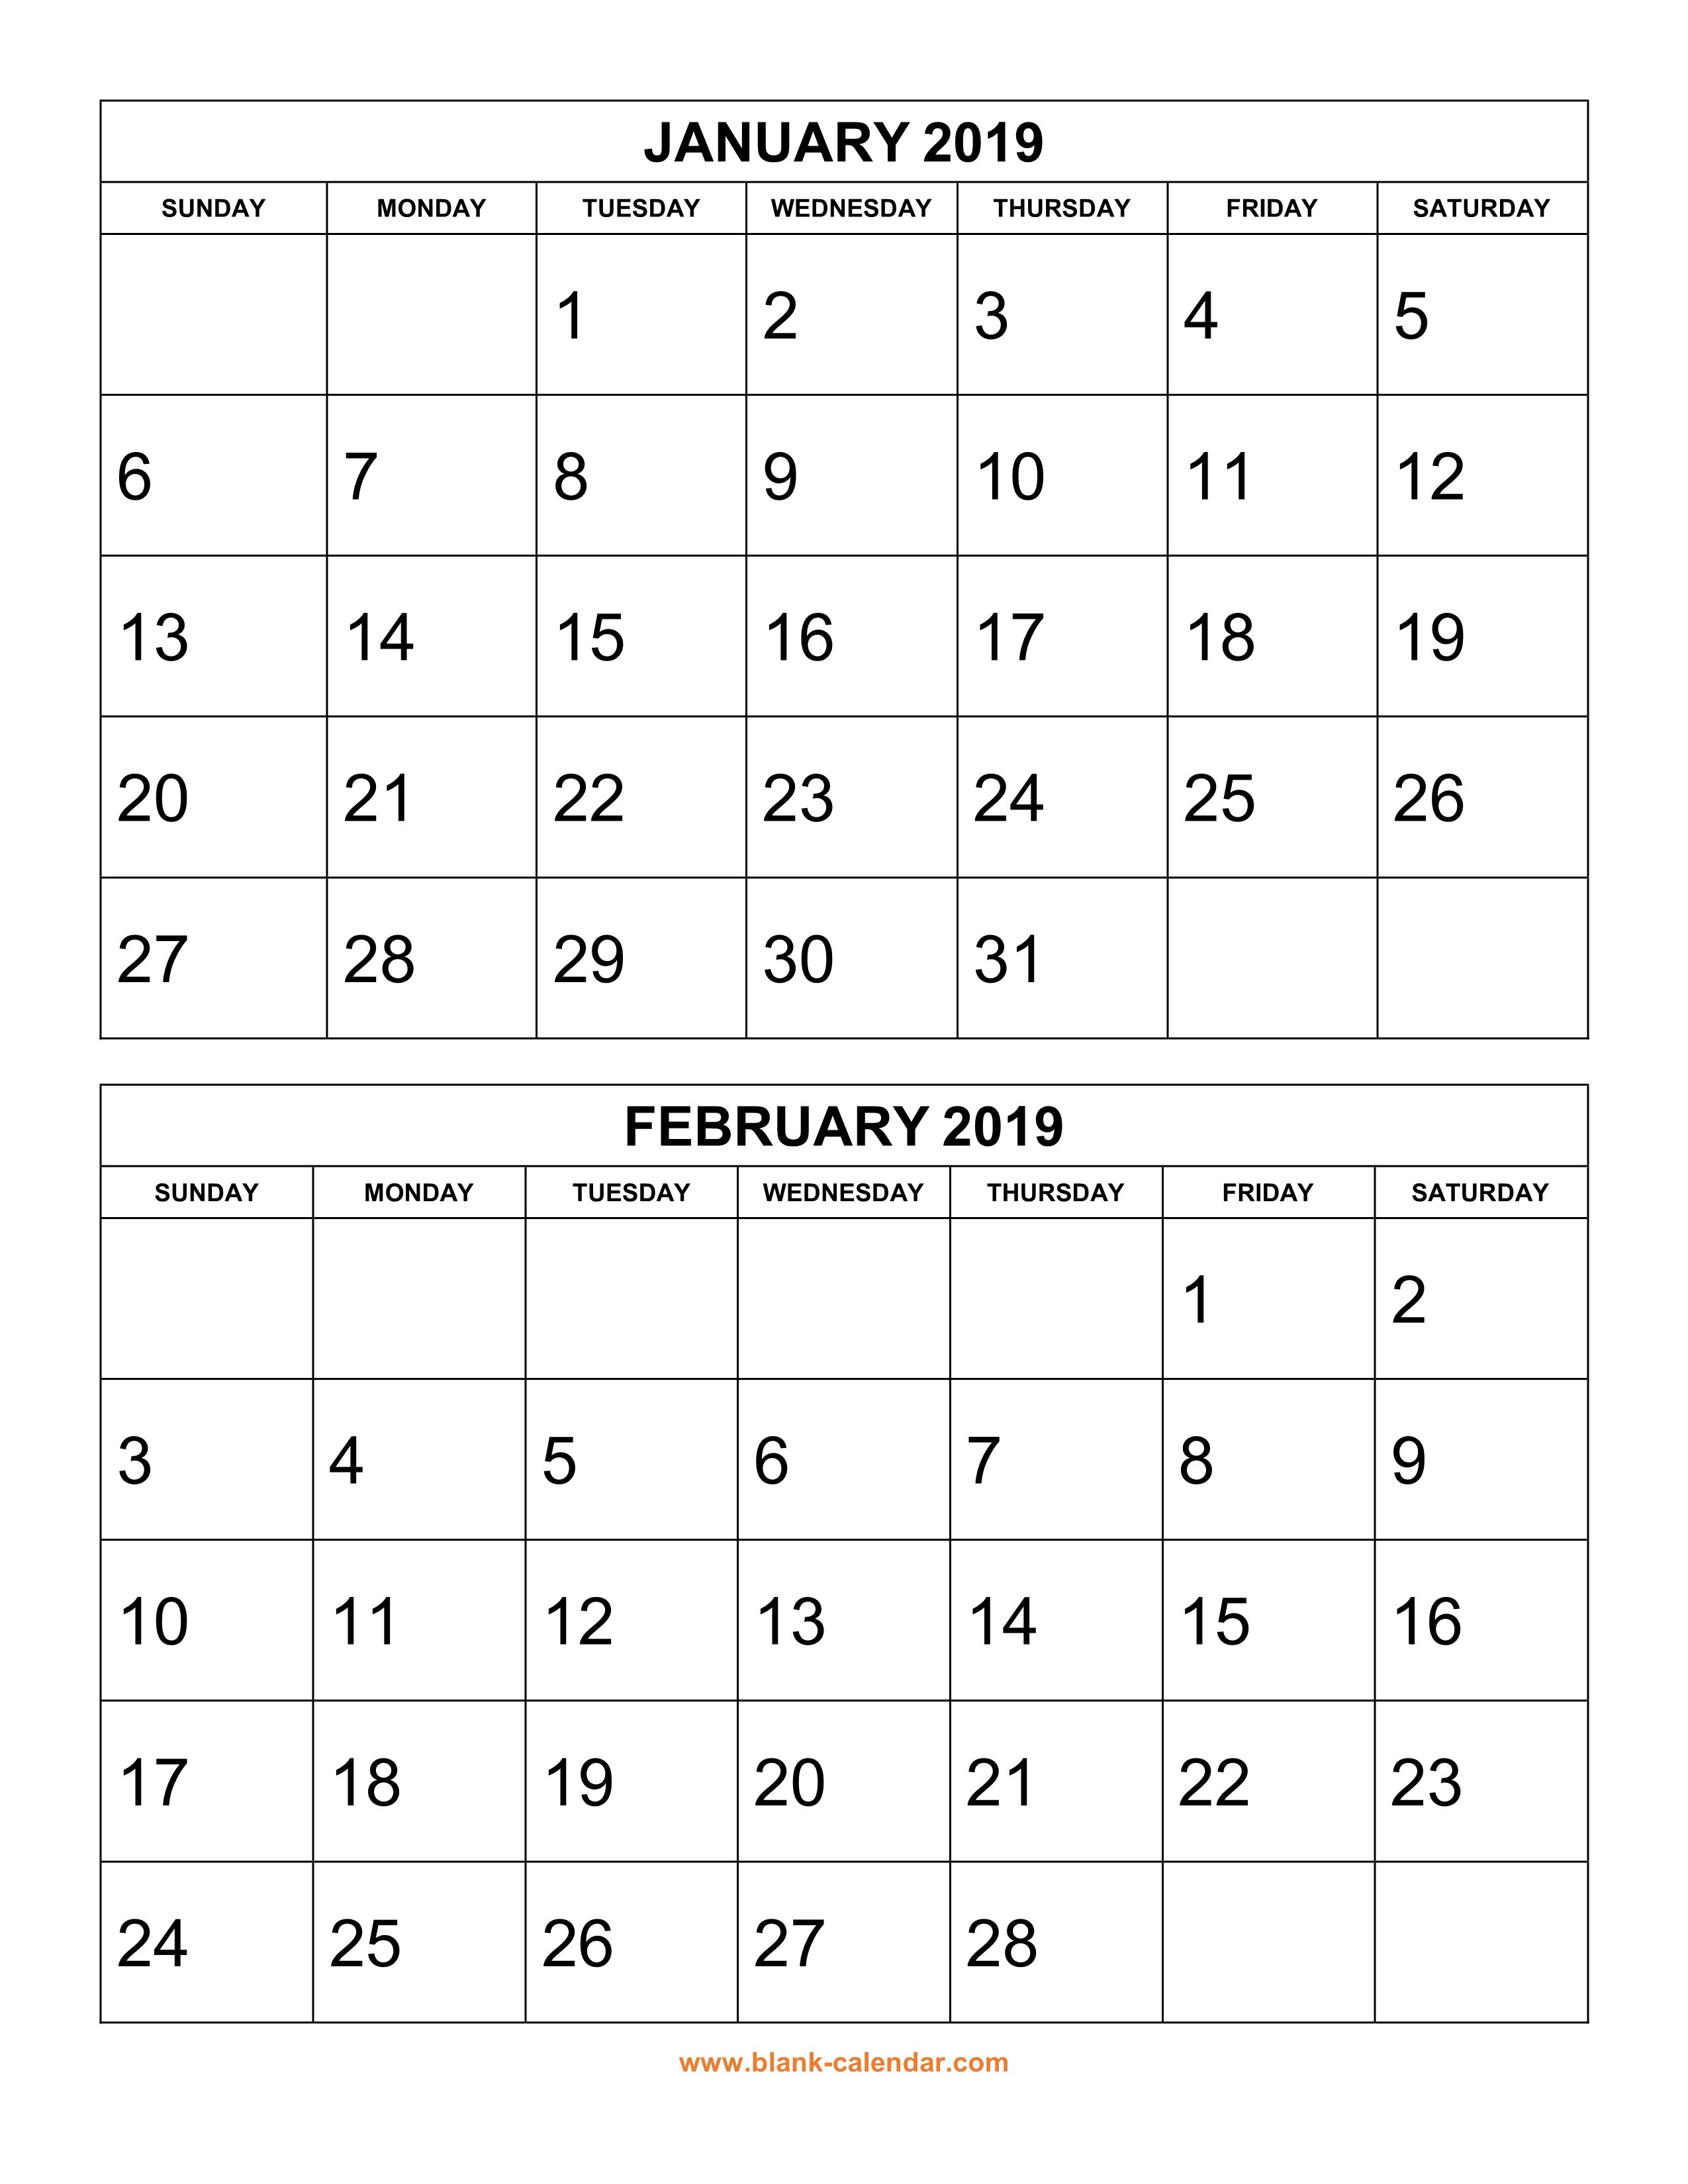 Free Download Printable Calendar 2019, 2 Months Per Page, 6 Pages Calendar 2019 Pages